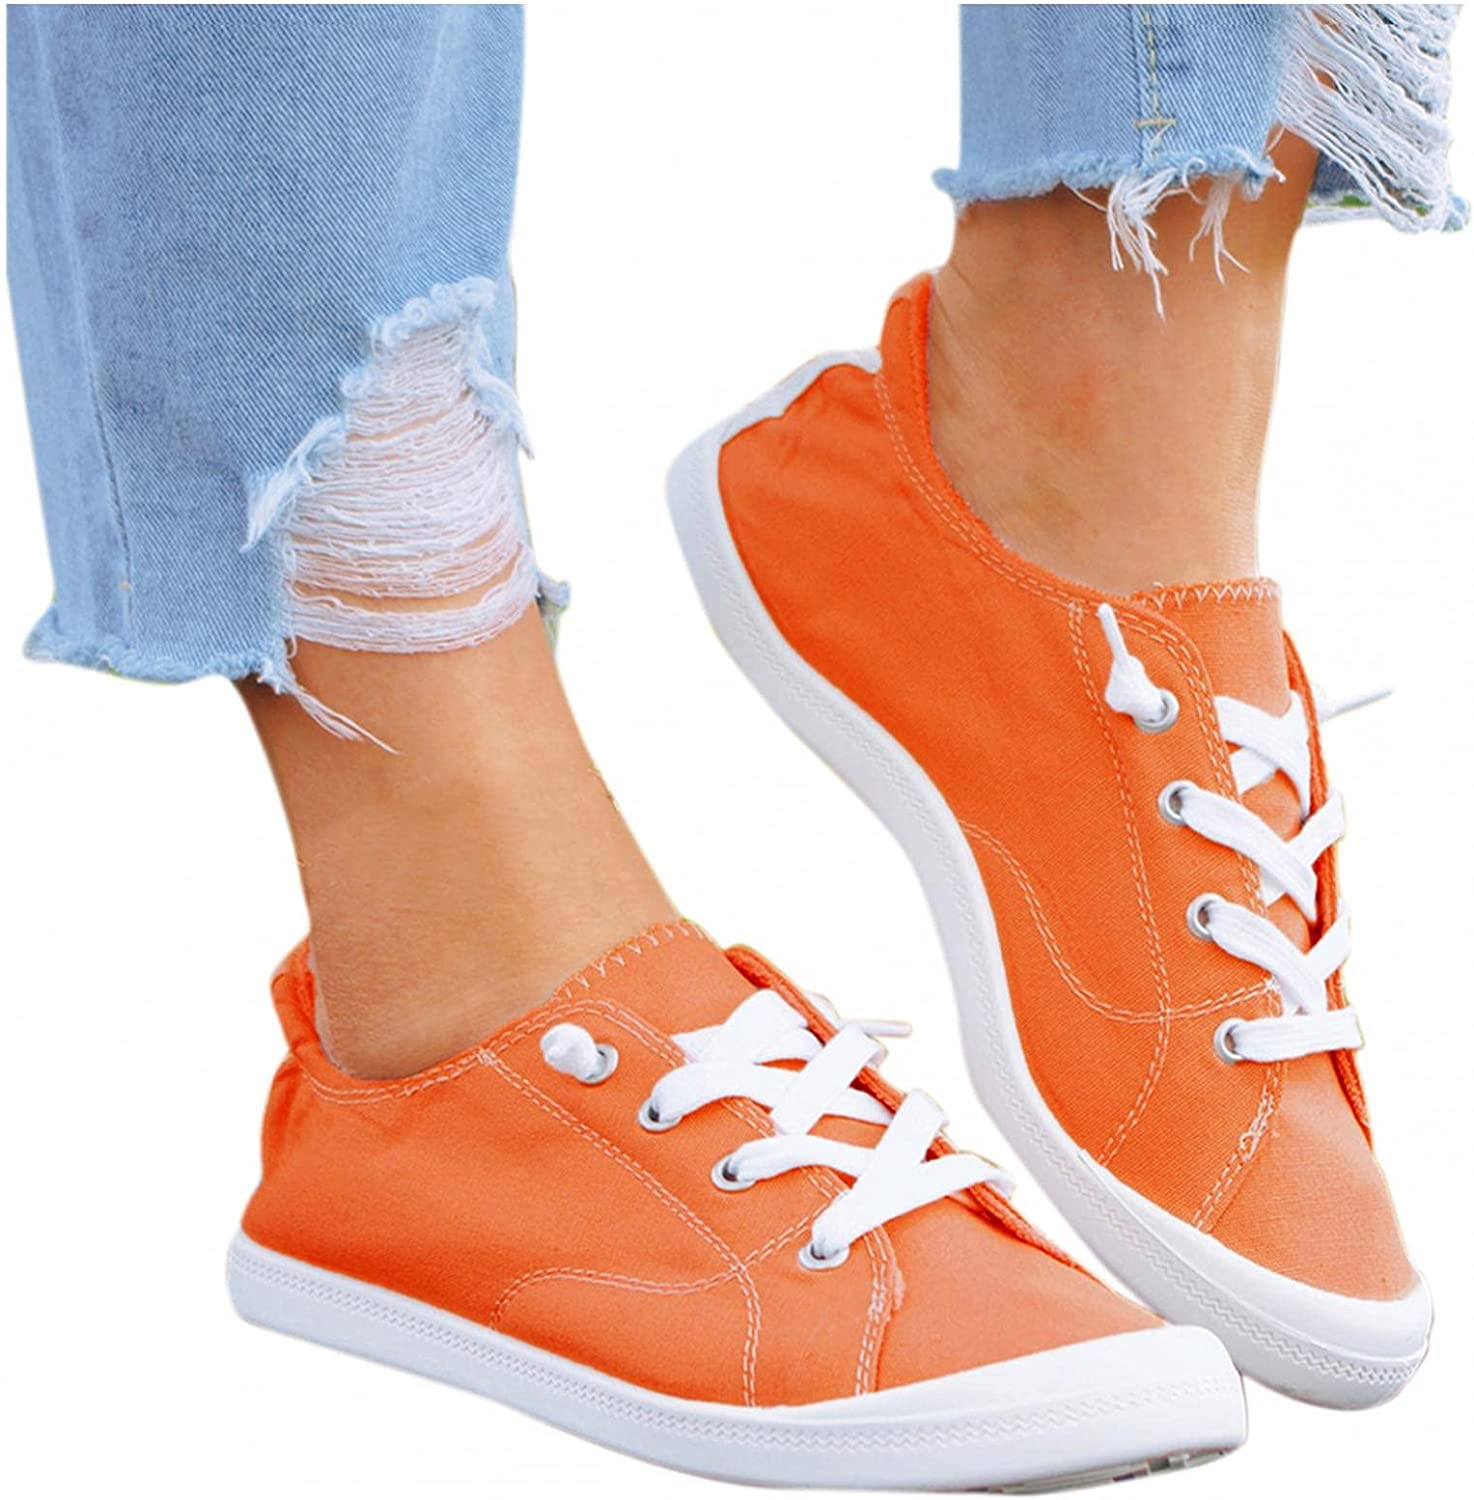 AODONG Sneakers for Women Slip on Summer Lace Up Flat Loafers Shoes Ladies Comfortable Walking Canvas Sneakers